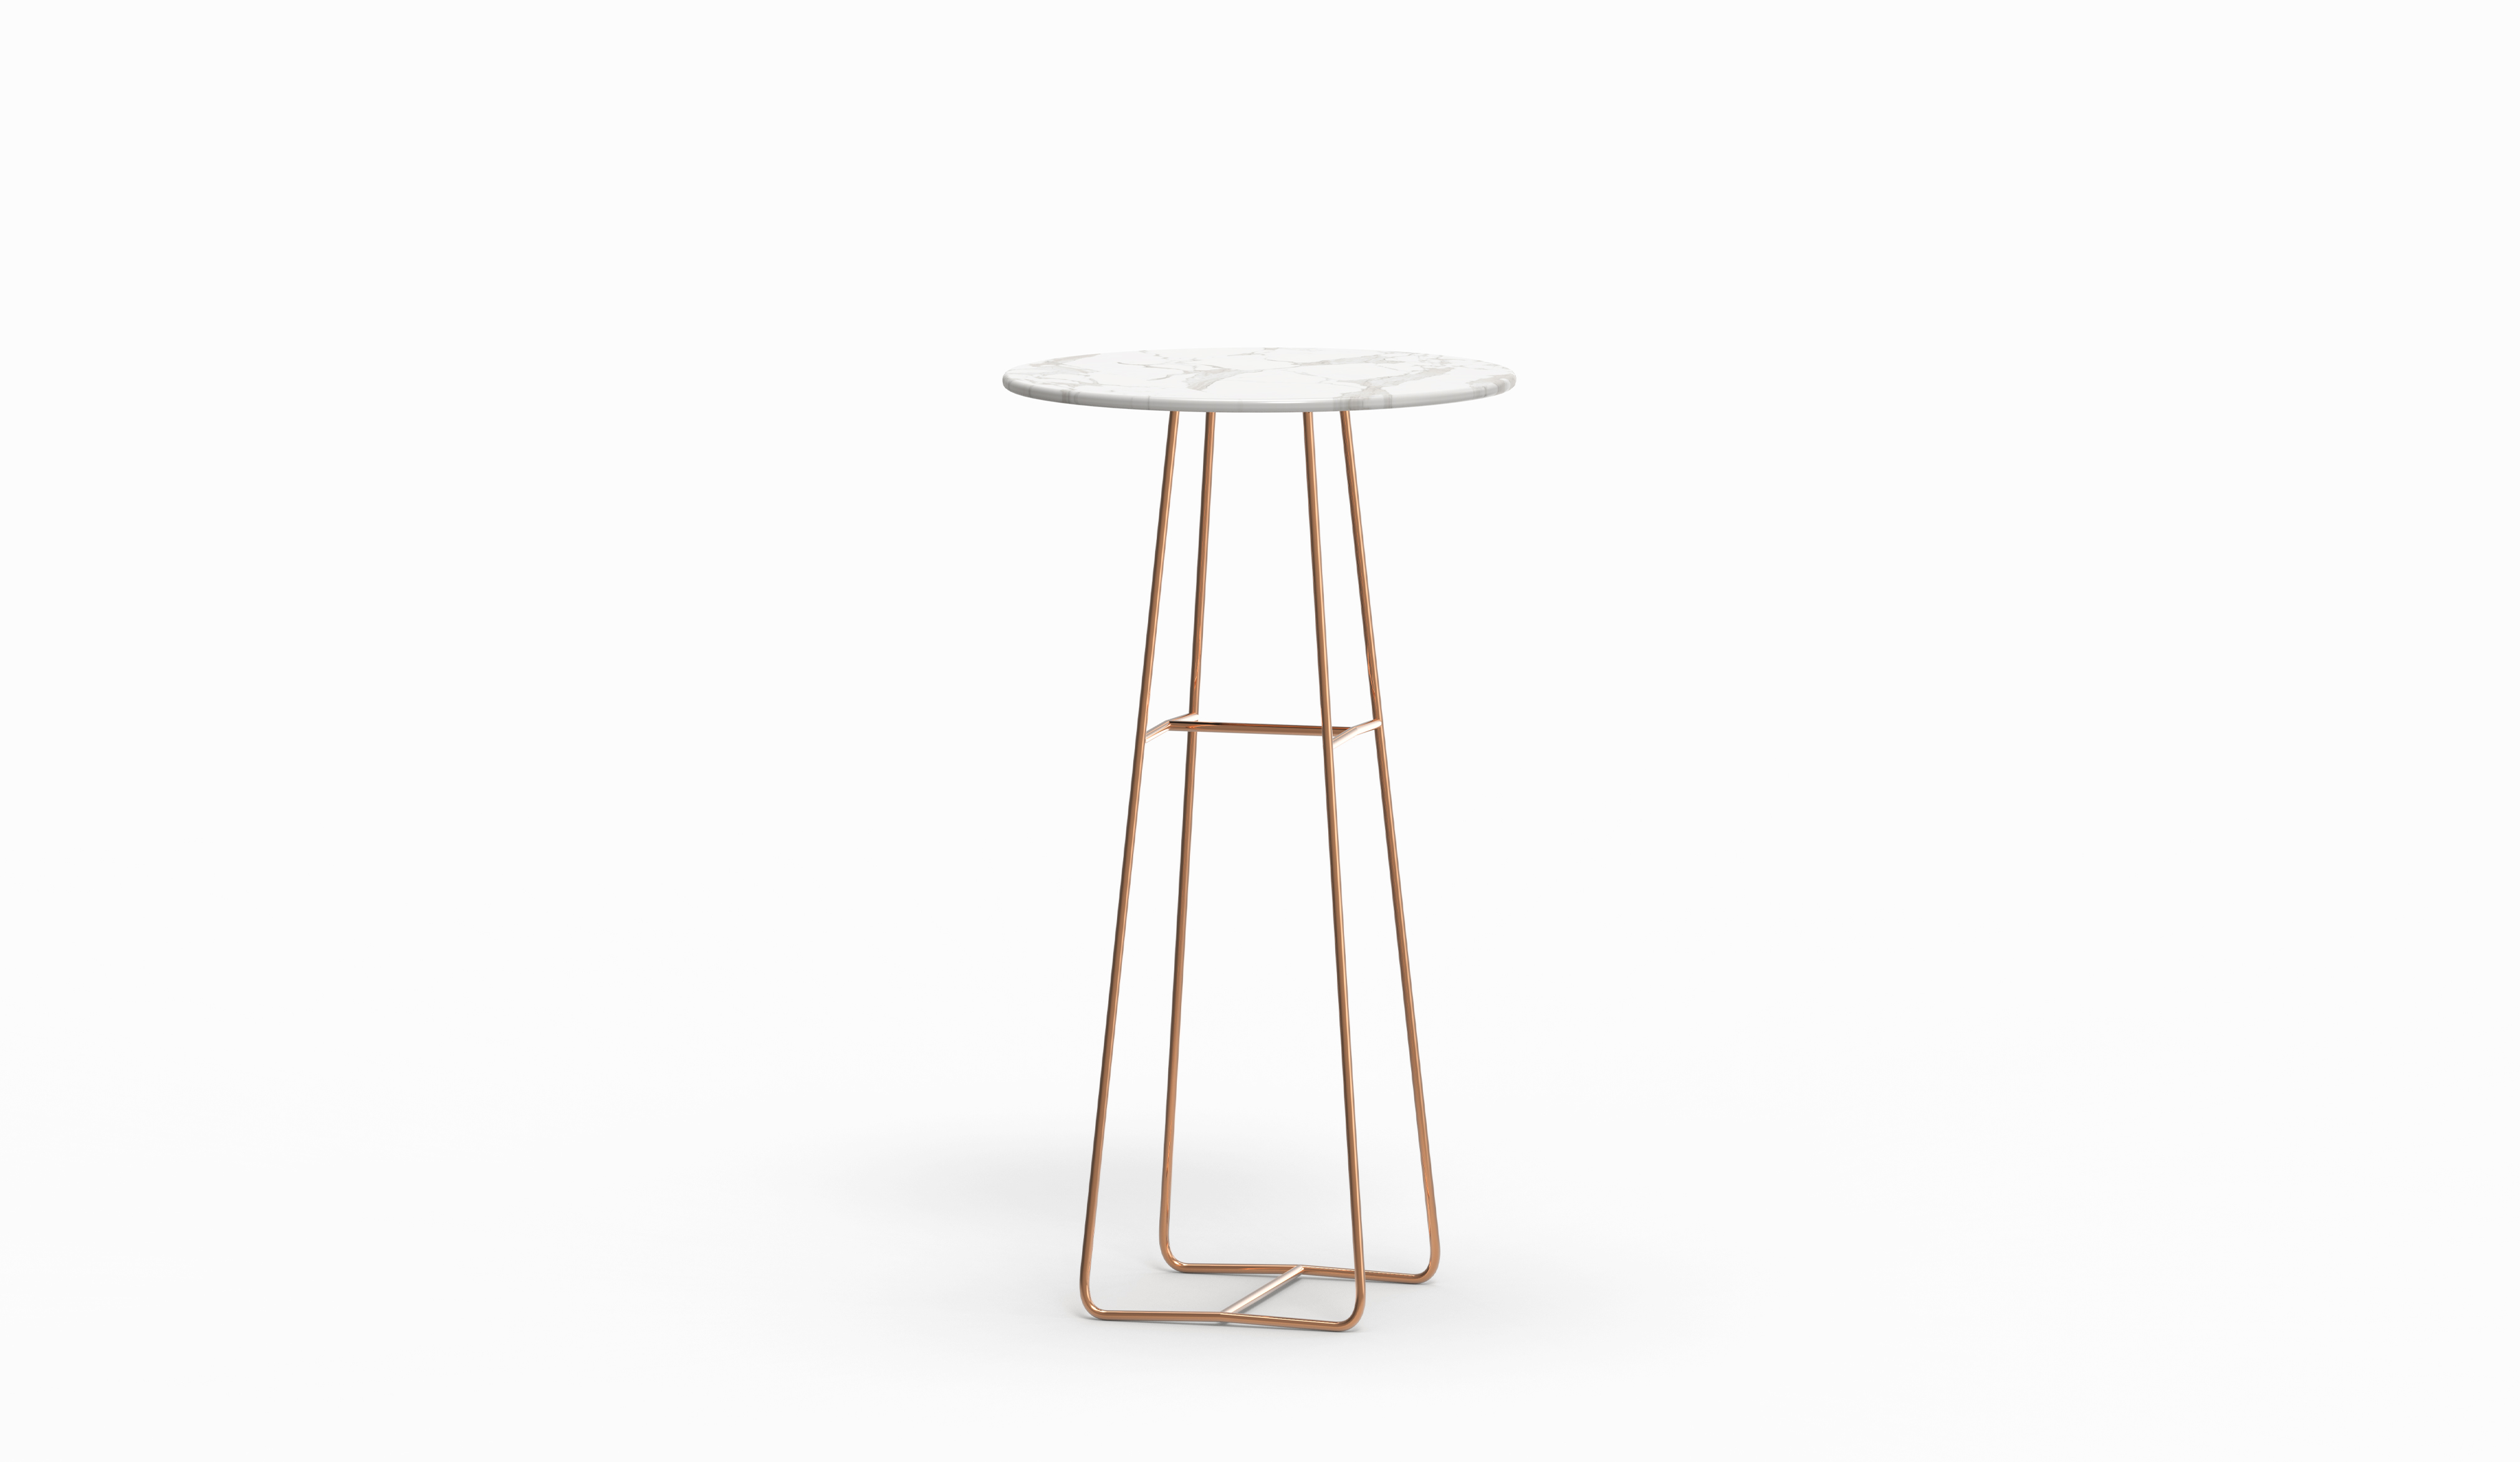 Mina High Table Venato Marble Rose Gold Legs Farell Contemporary Design Objects With Character